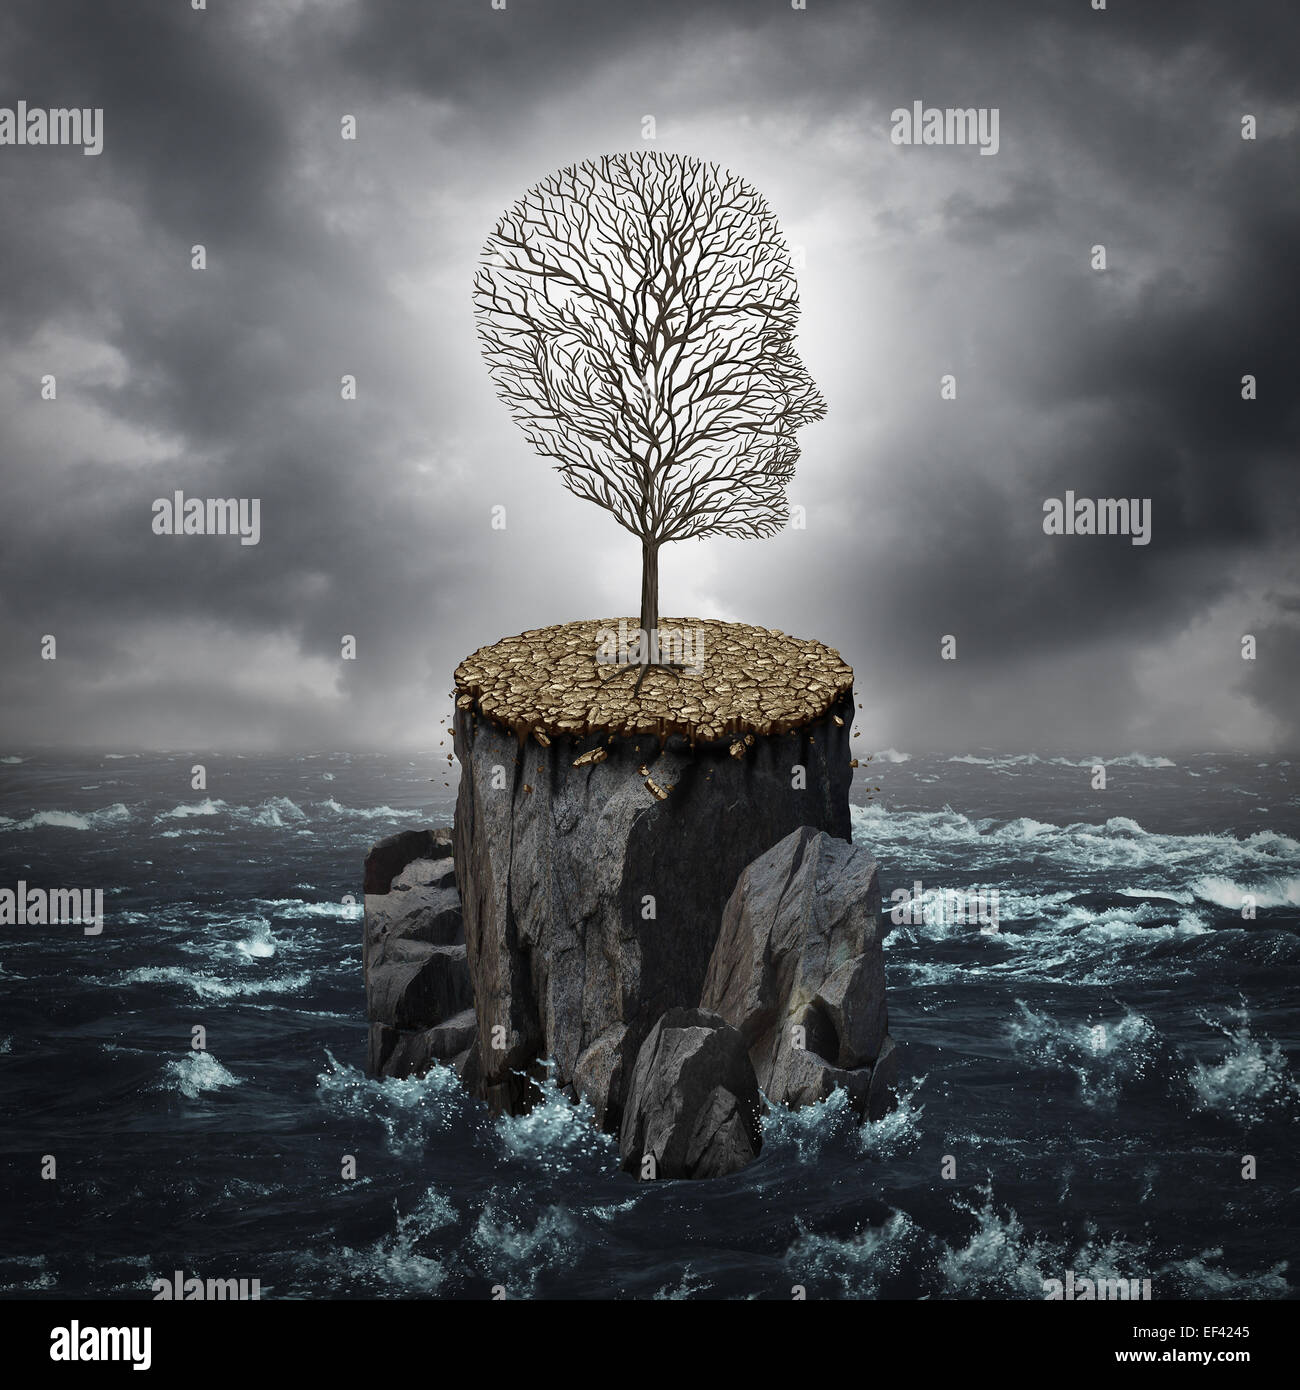 Failure crisis concept and lost business career or education opportunity metaphor as a dying tree shaped as a human - Stock Image